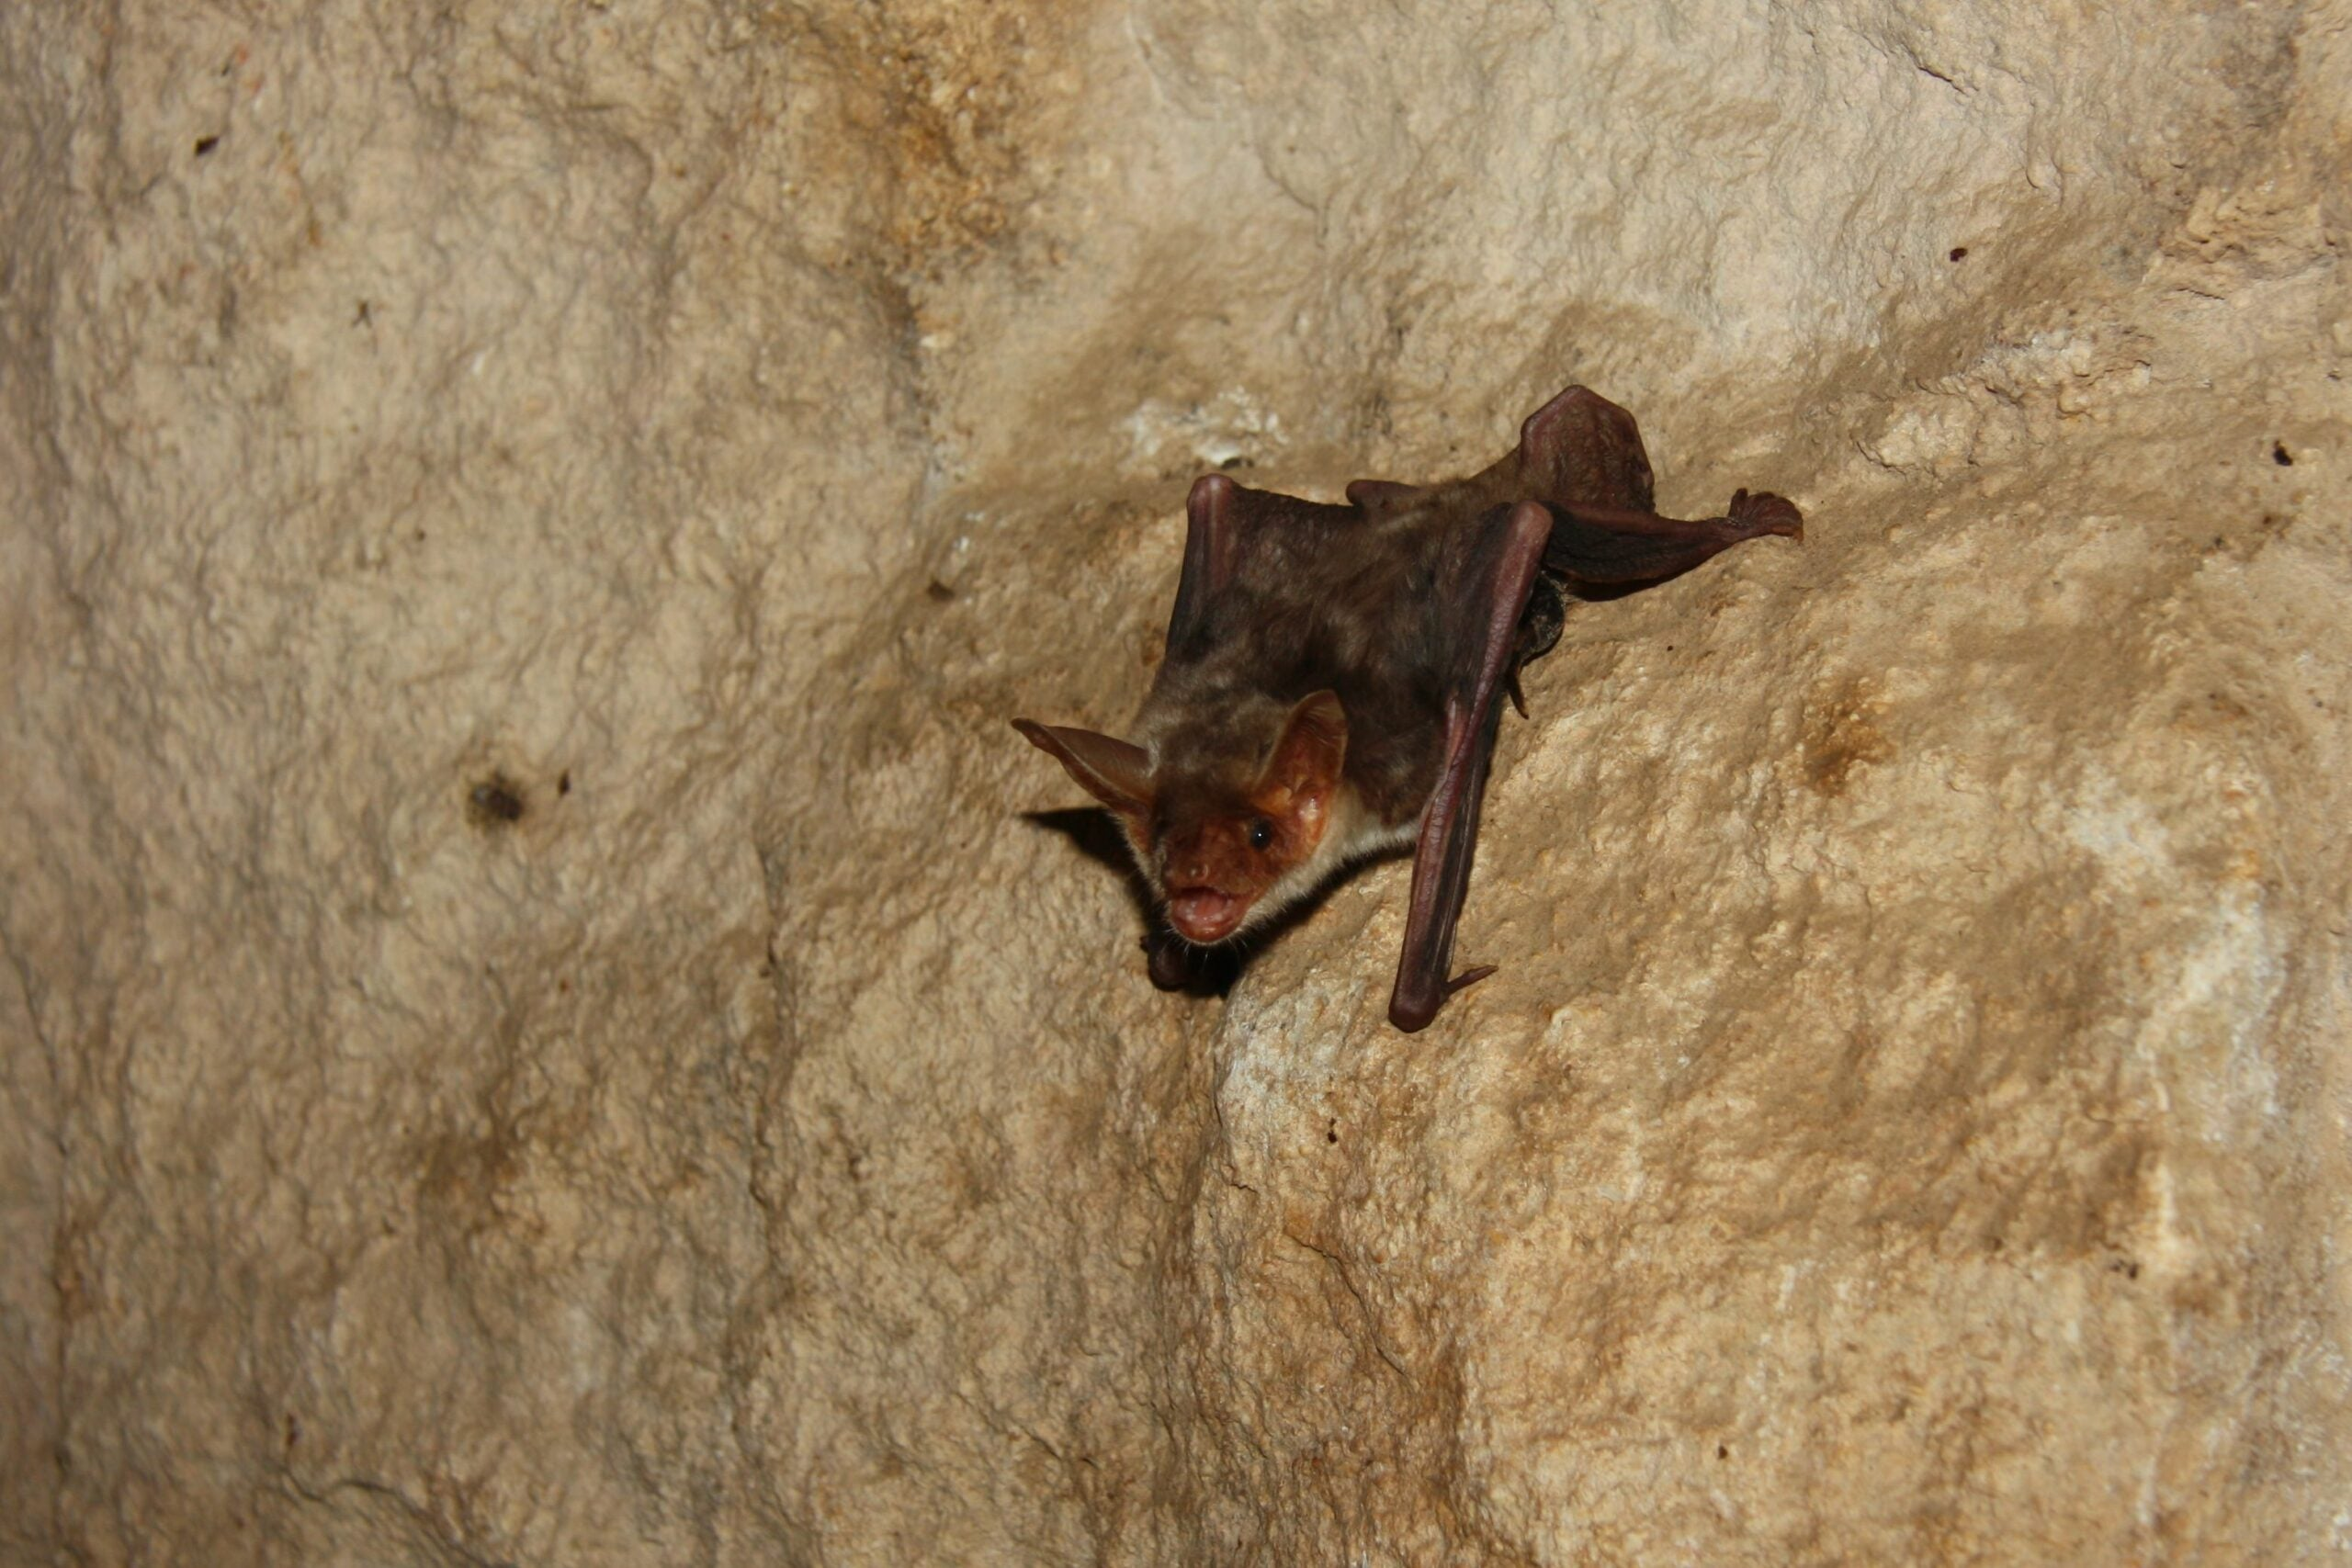 Far From Blind, Bats Use Polarized Light to Find Their Way